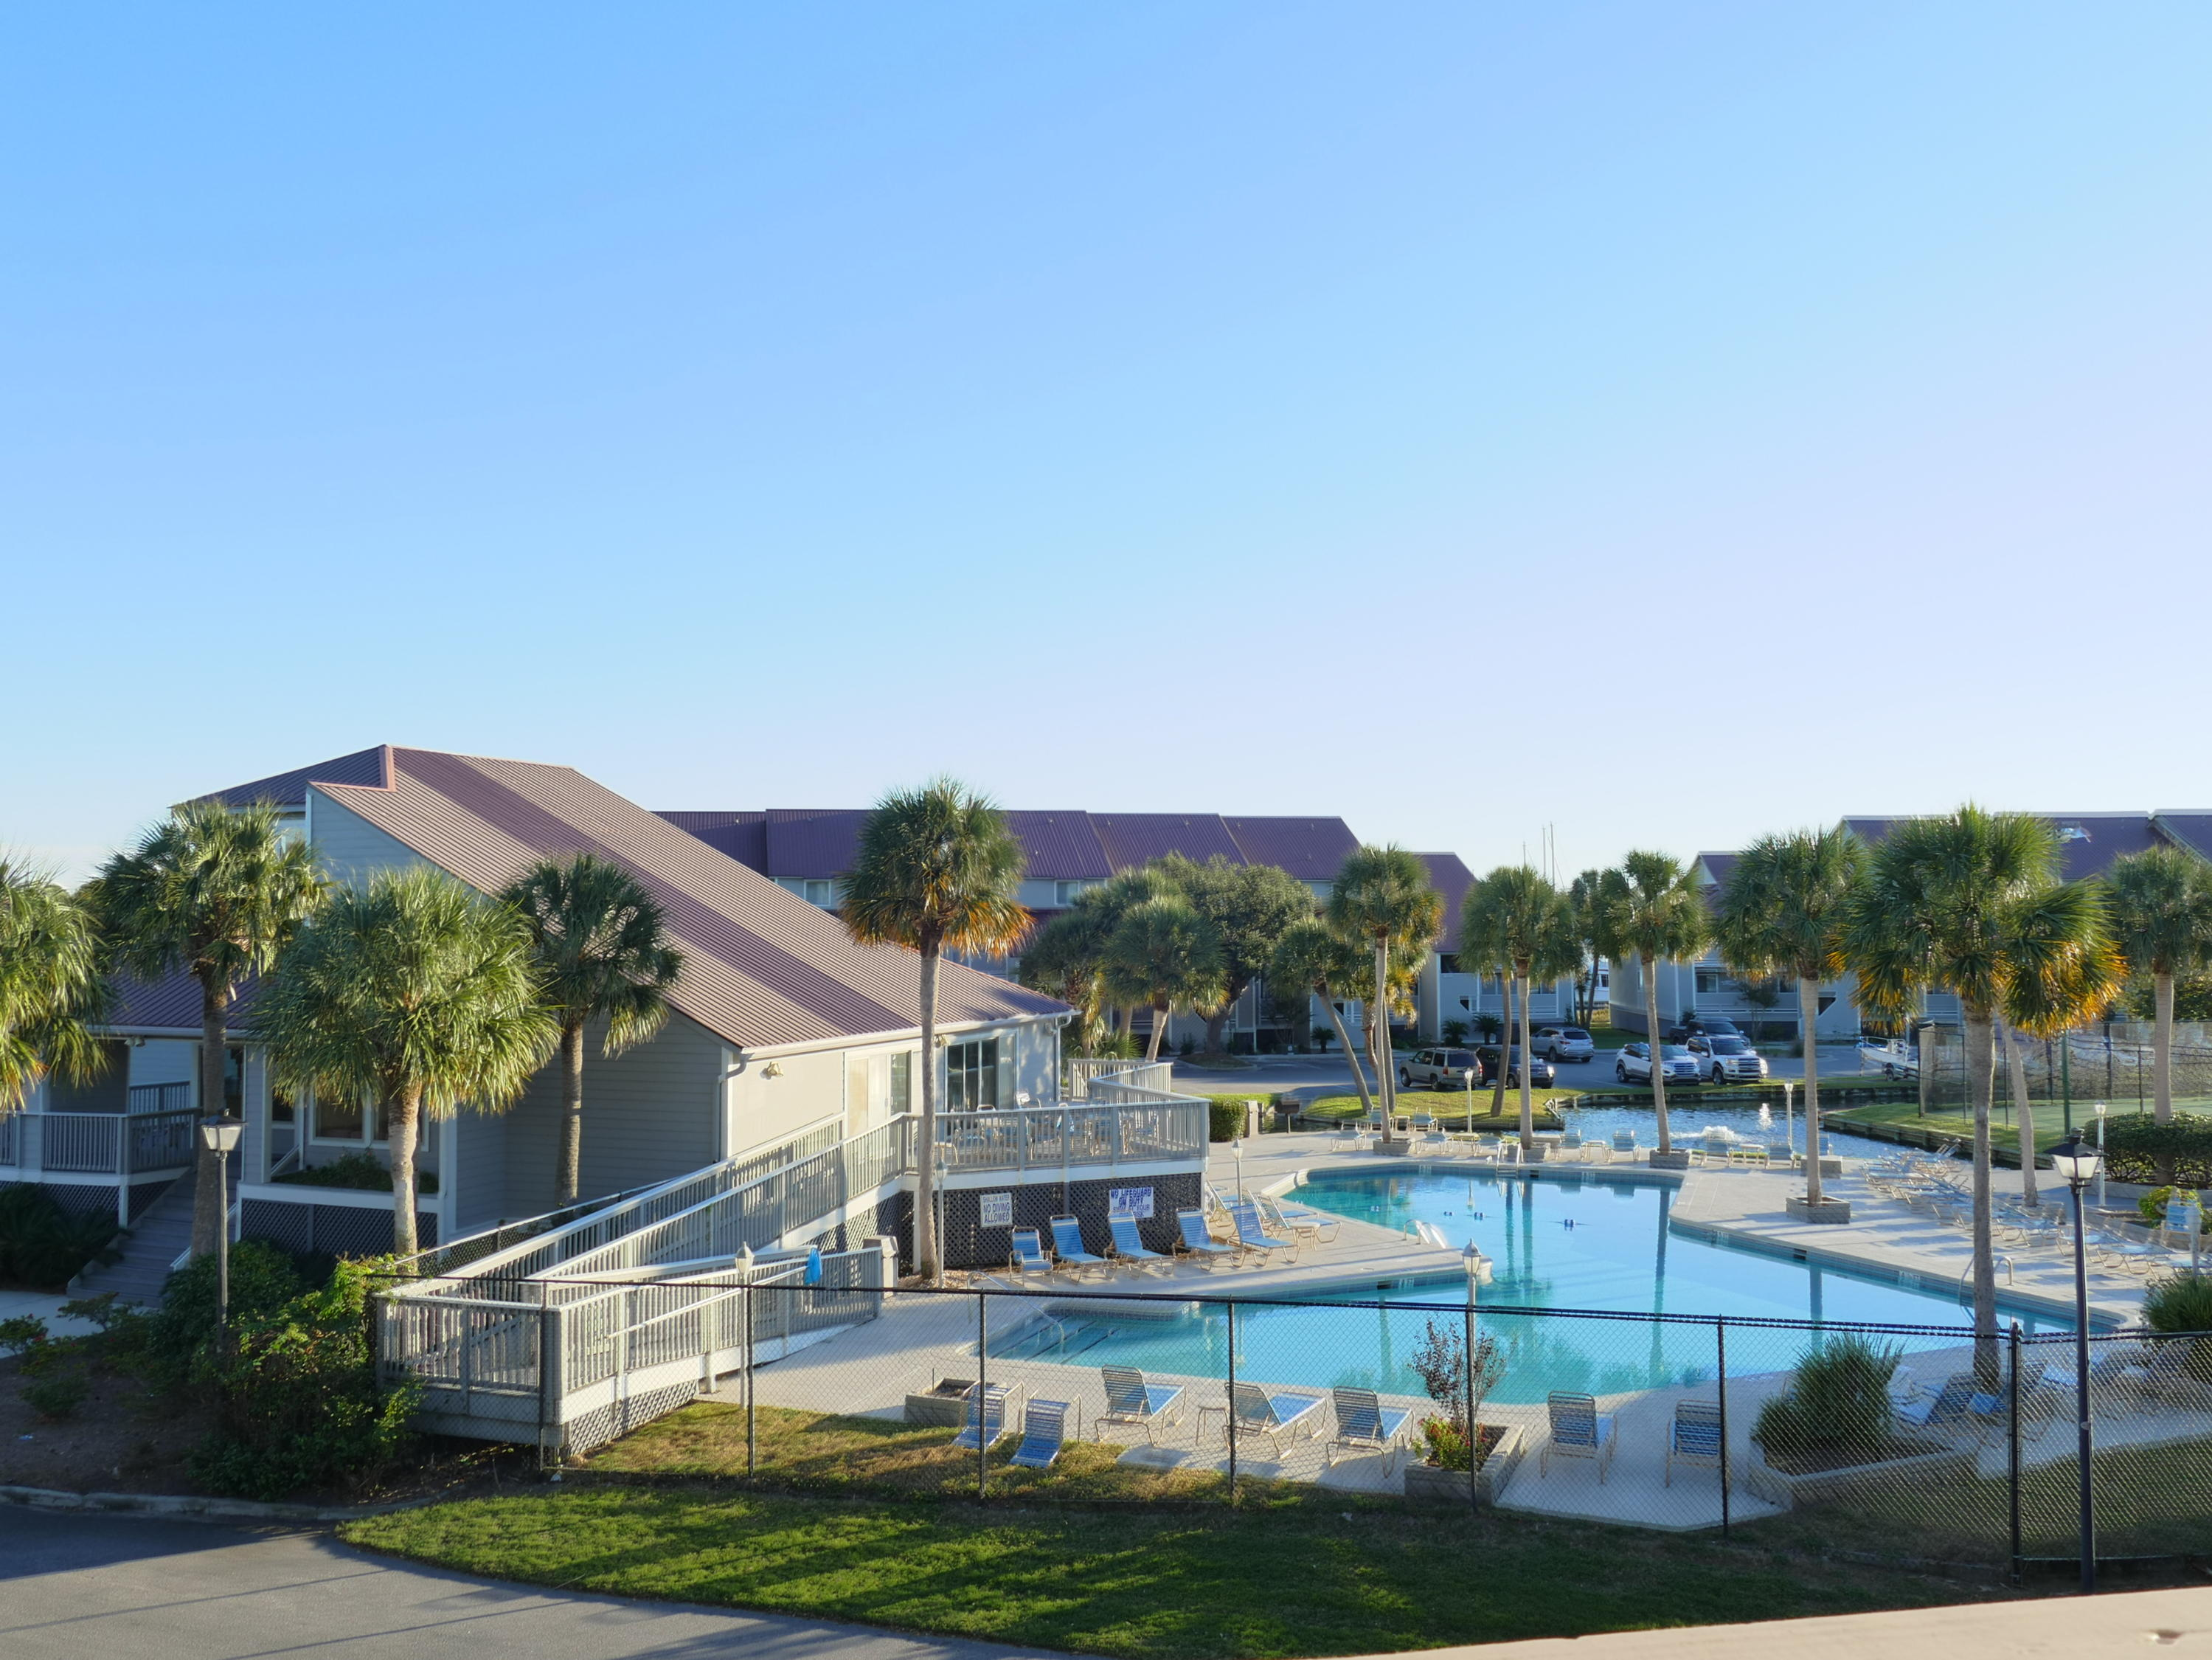 Marshview Villas Homes For Sale - 162 Marsh View Villas, Folly Beach, SC - 21